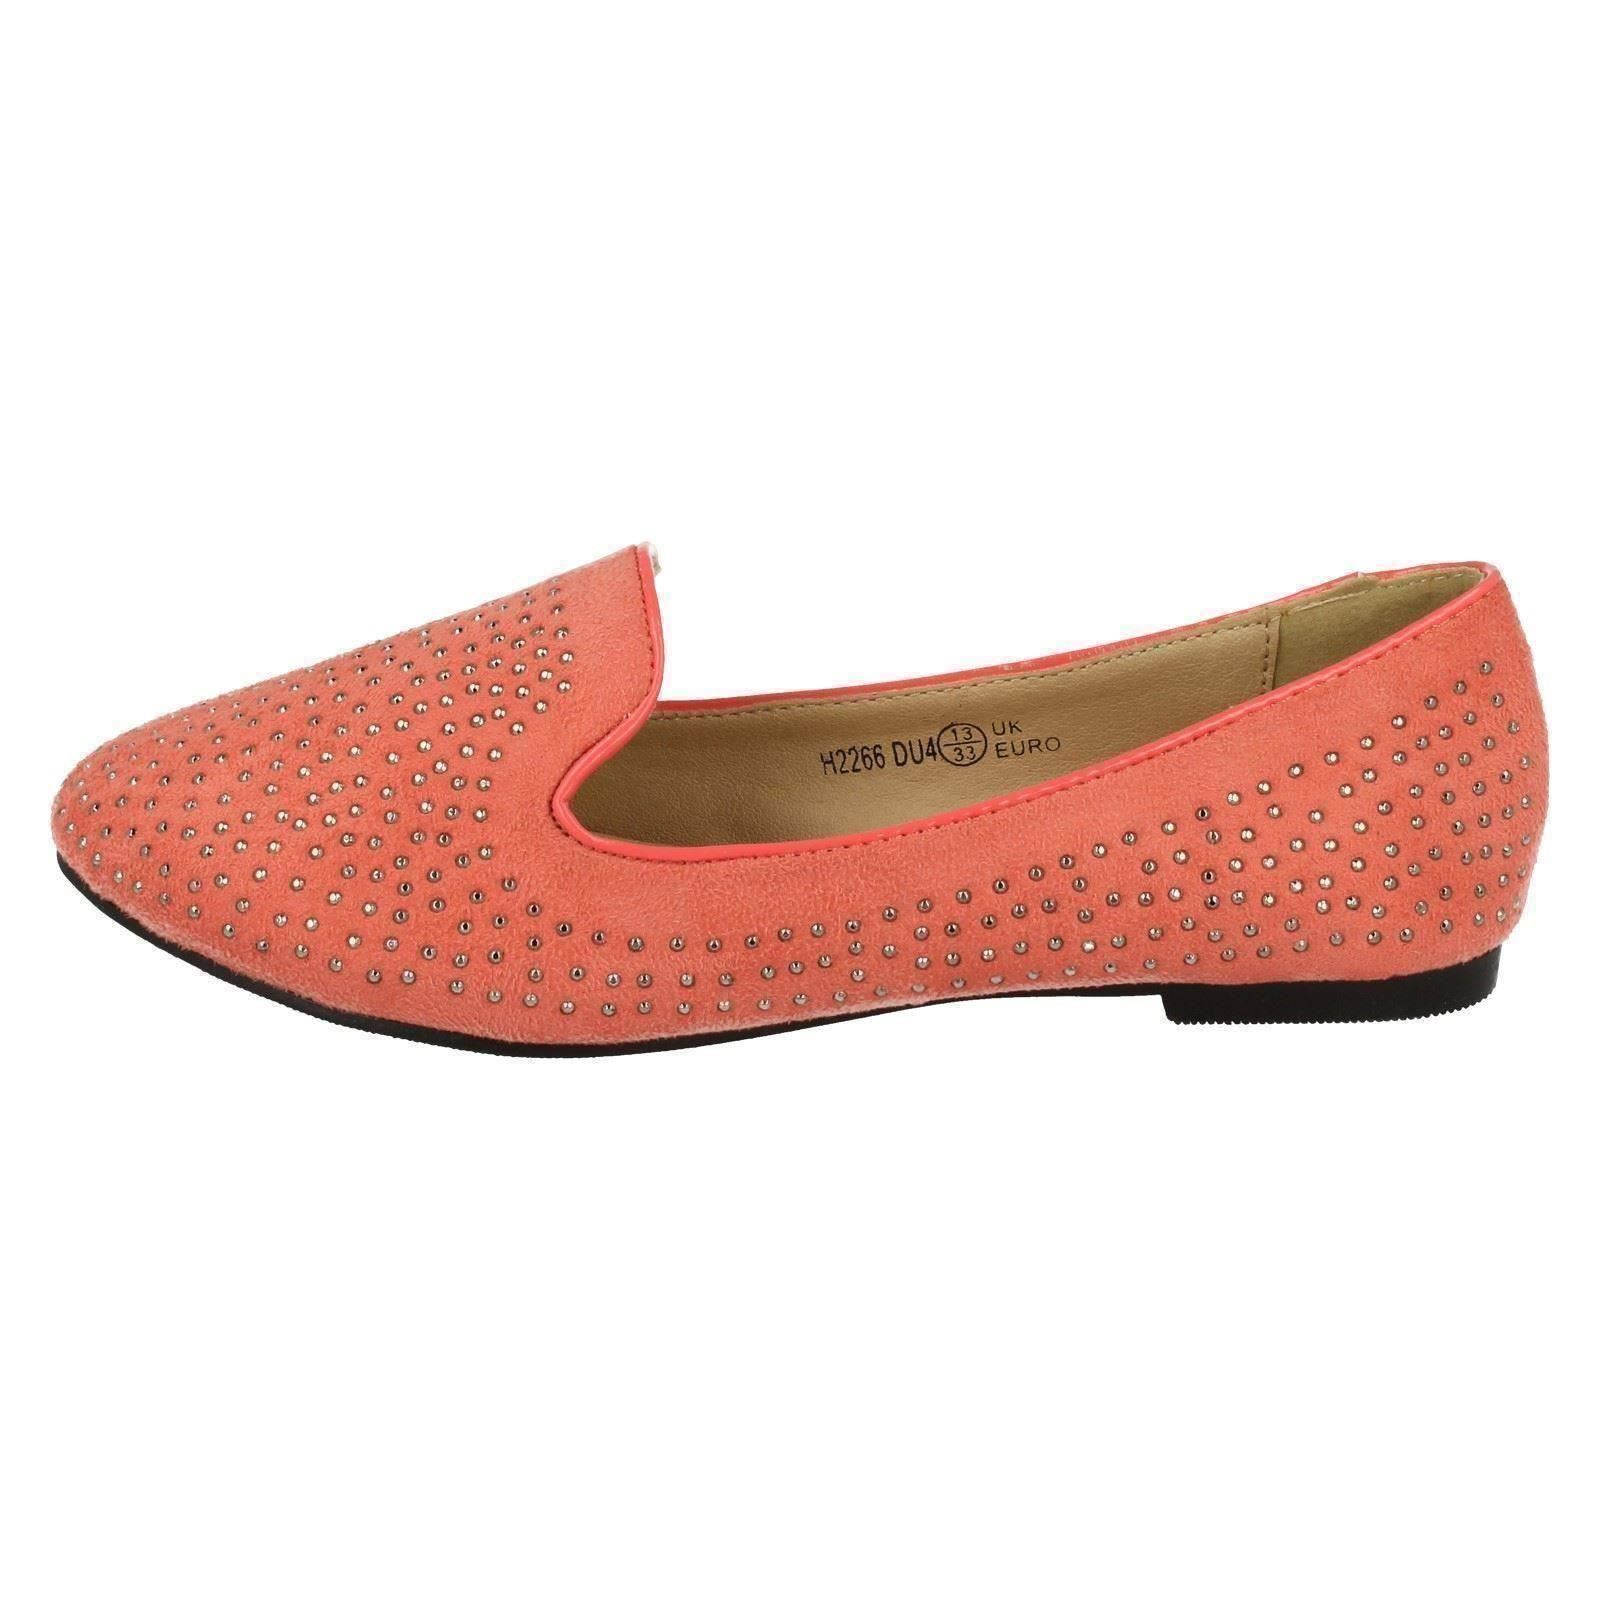 Girls Spot On H2266 Shoes The Style ~ K